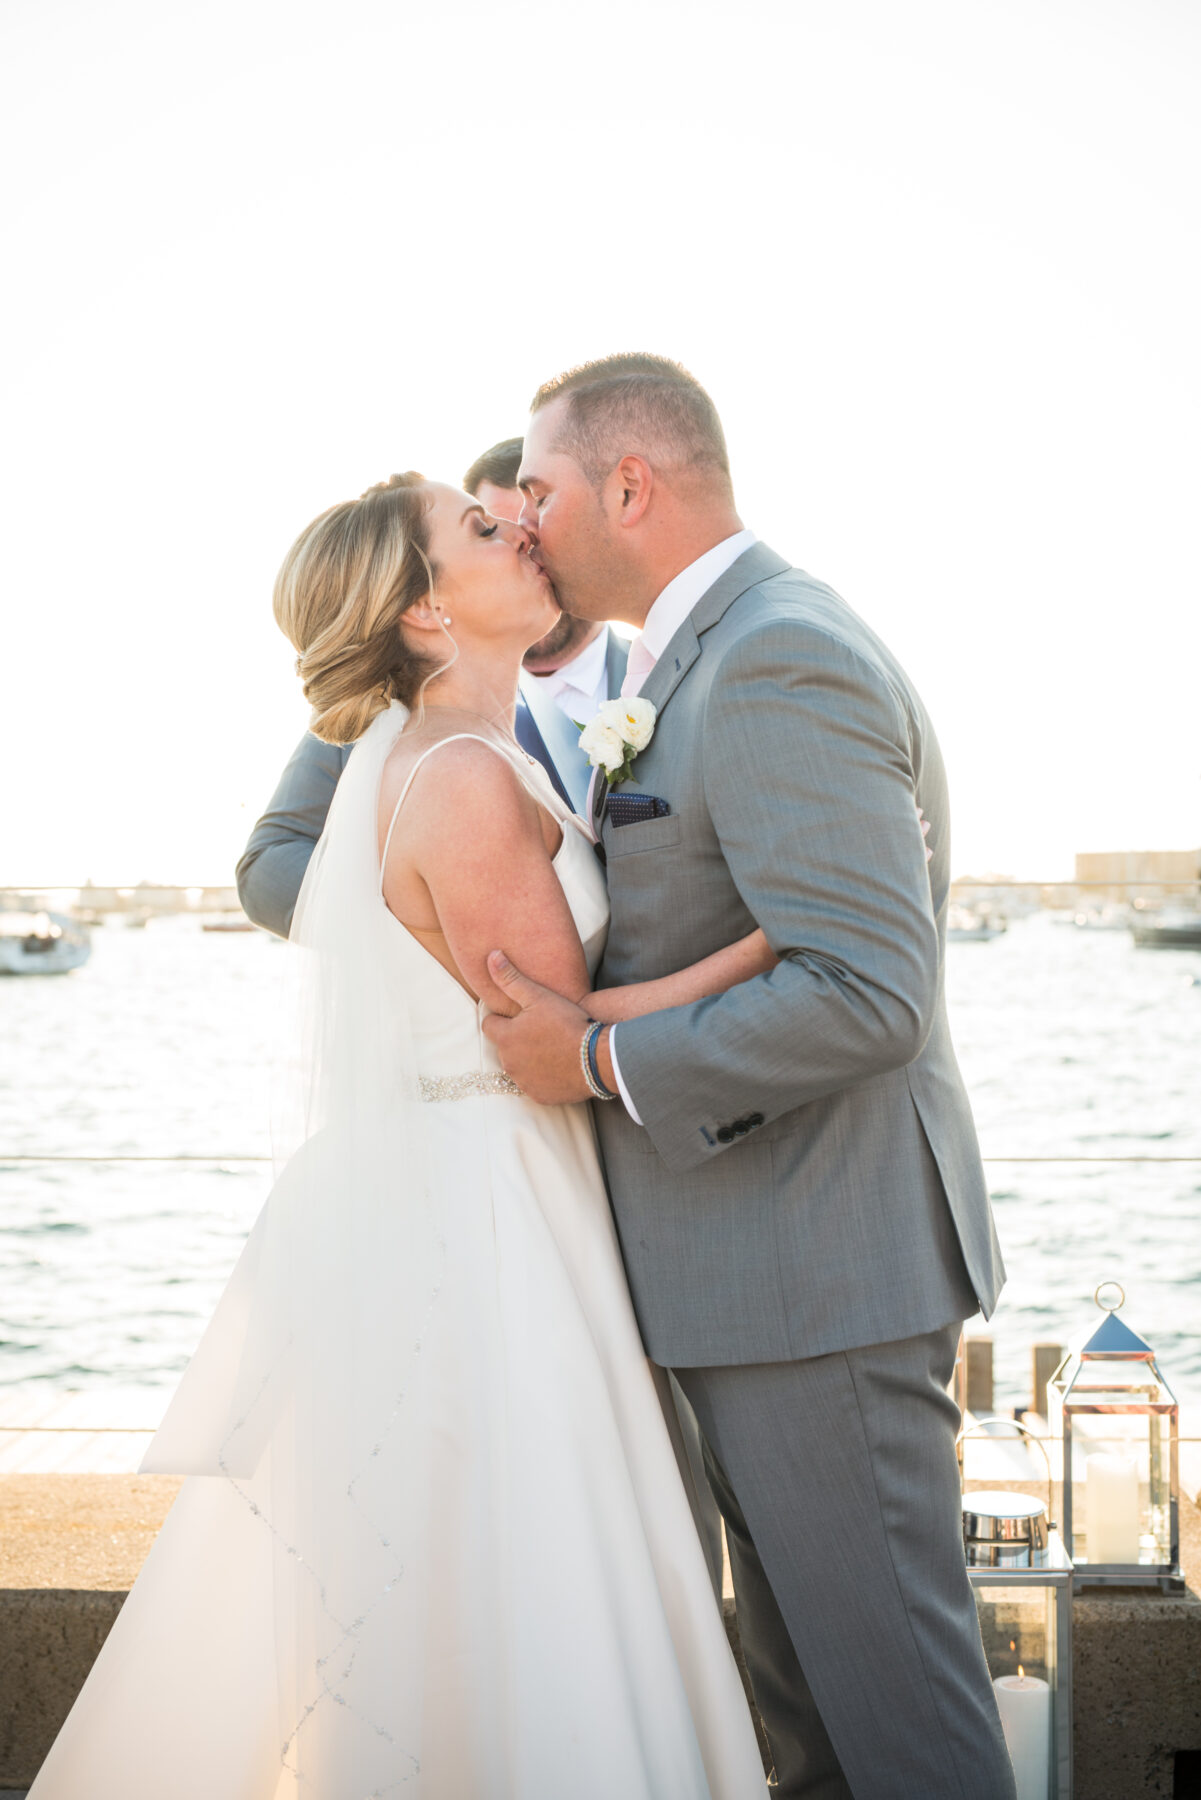 Bolhin Newport Wedding Ashley and Andre Blueflash Photography 5